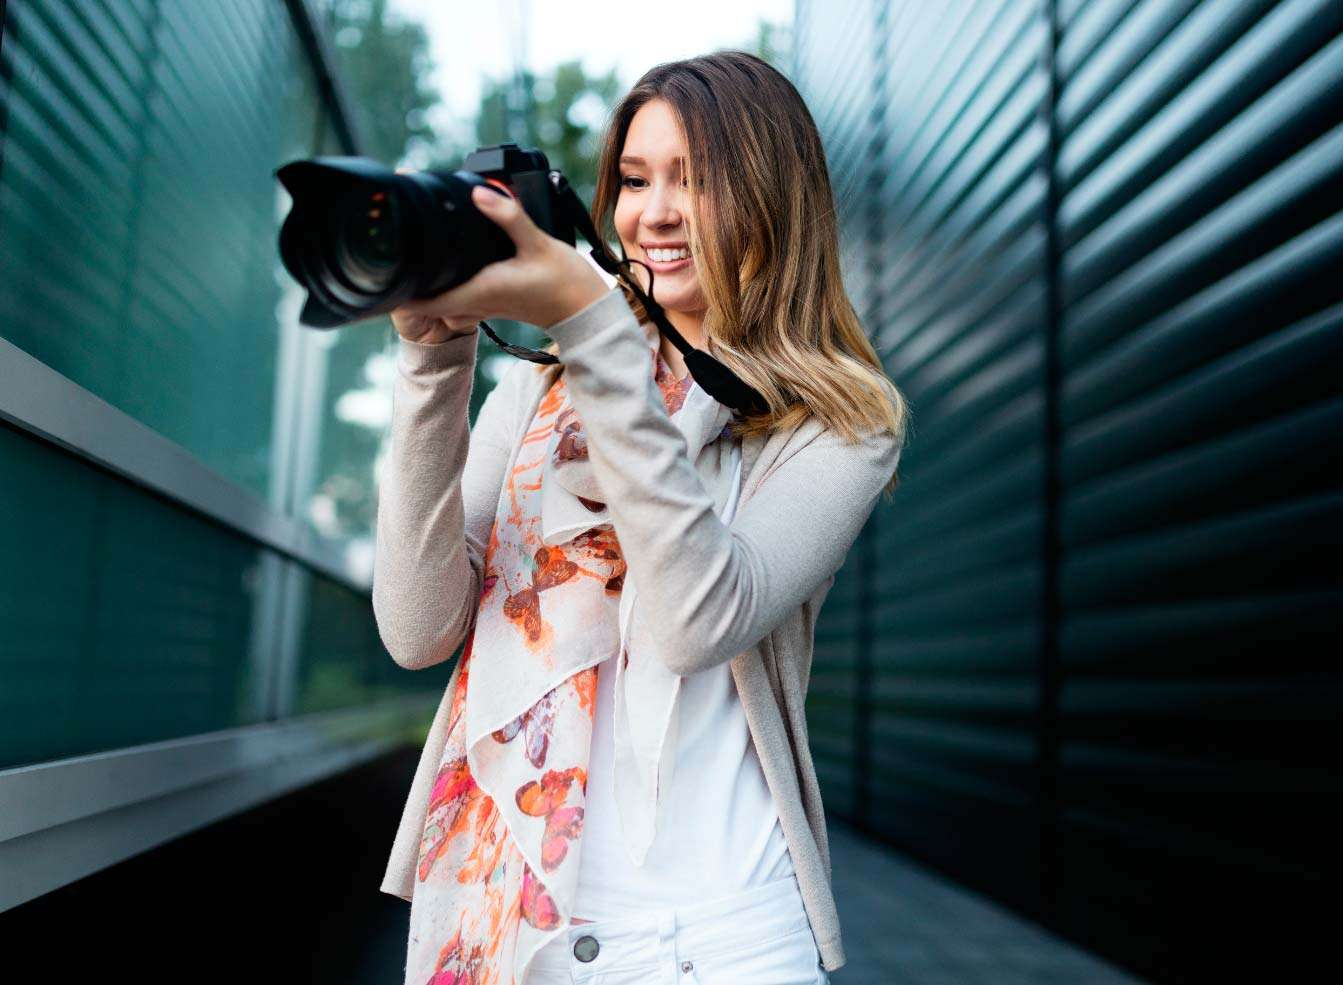 woman-is-a-professional-photographer-with-dslr-cam-B3XUS4E.jpg